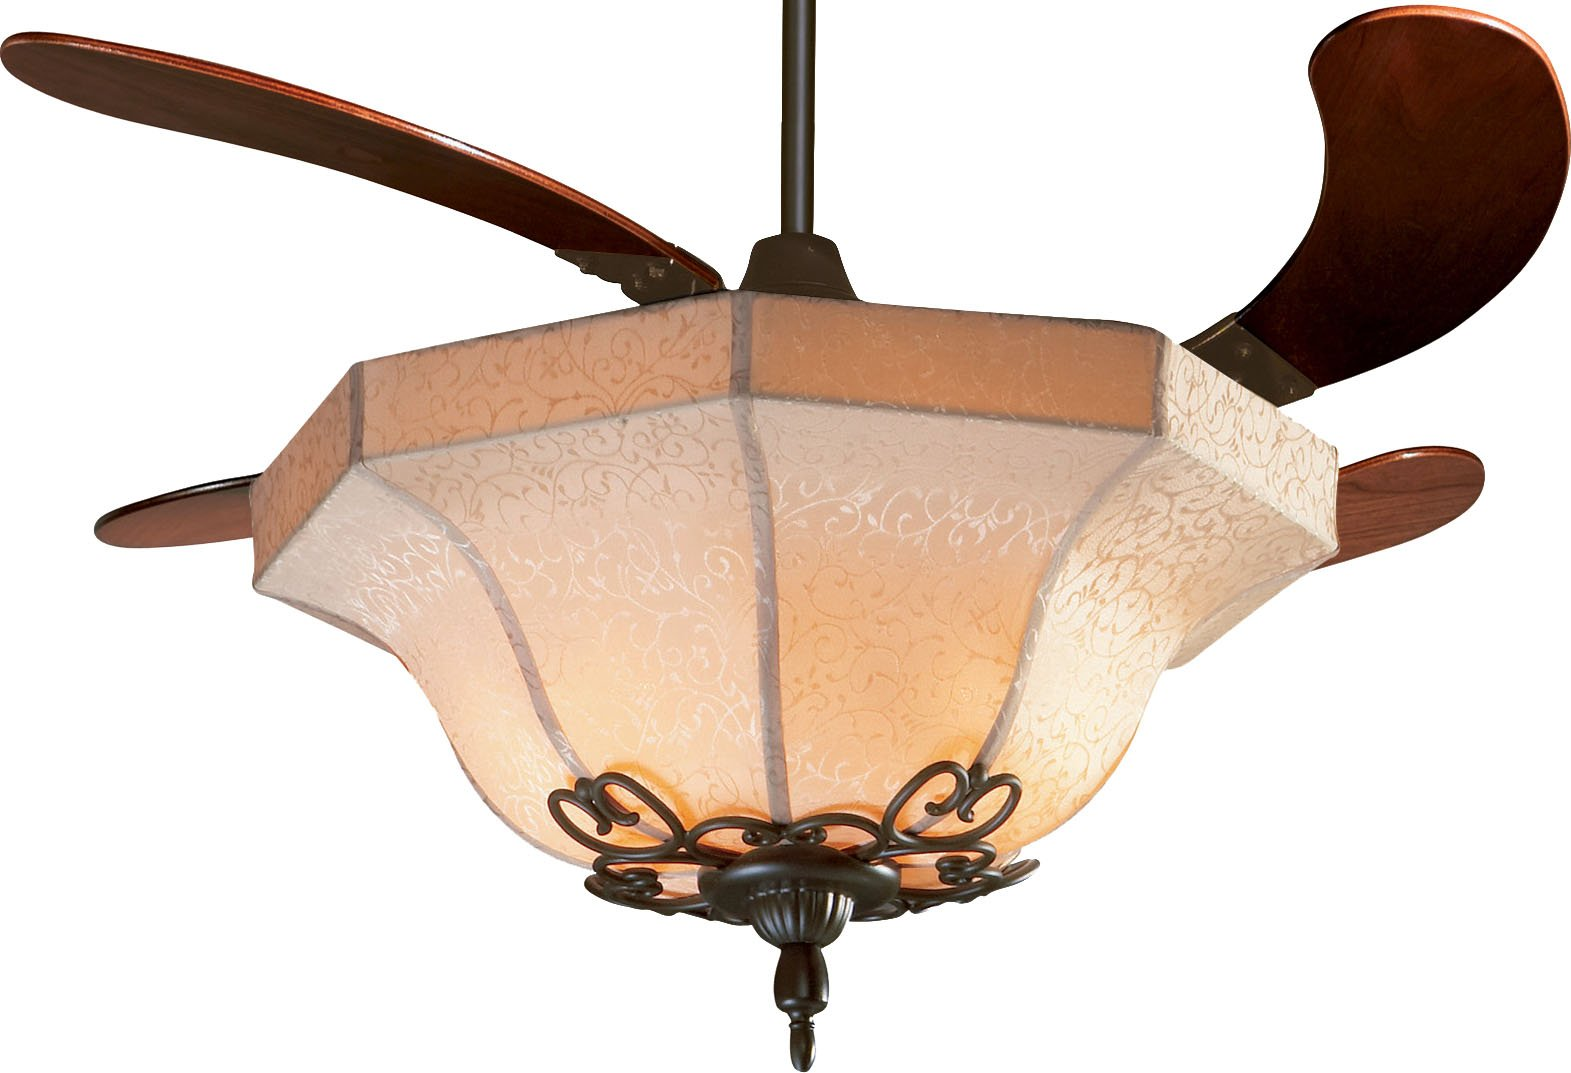 Fanimation FP815FS Air Shadow Fabric Shade Ceiling Fan with 4 Cherry Blades and Fabric Shade, Oil Rubbed Bronze Finish